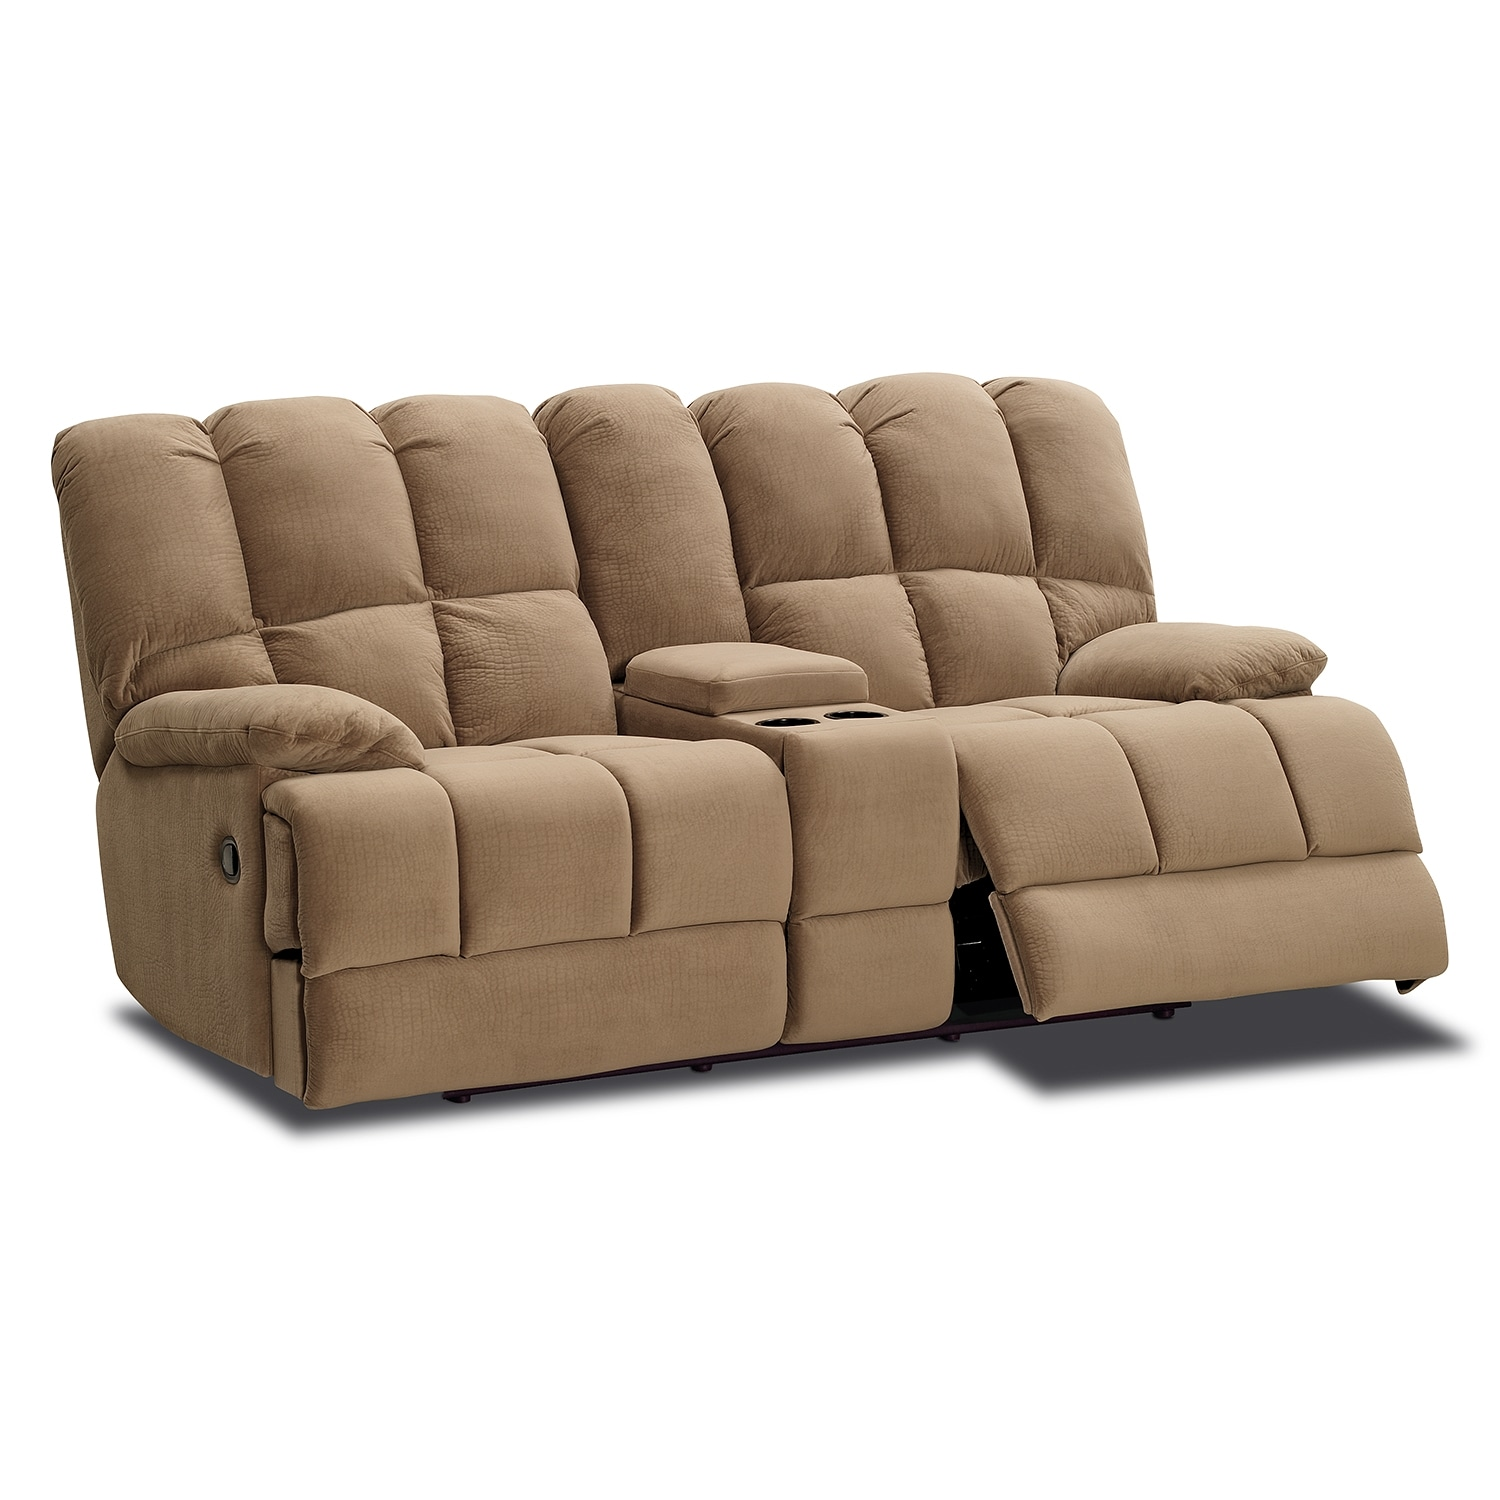 Microfiber Dual Reclining Sofa 100 Leons Recliners Sanford Love Seat Power Recliner Leathe 100